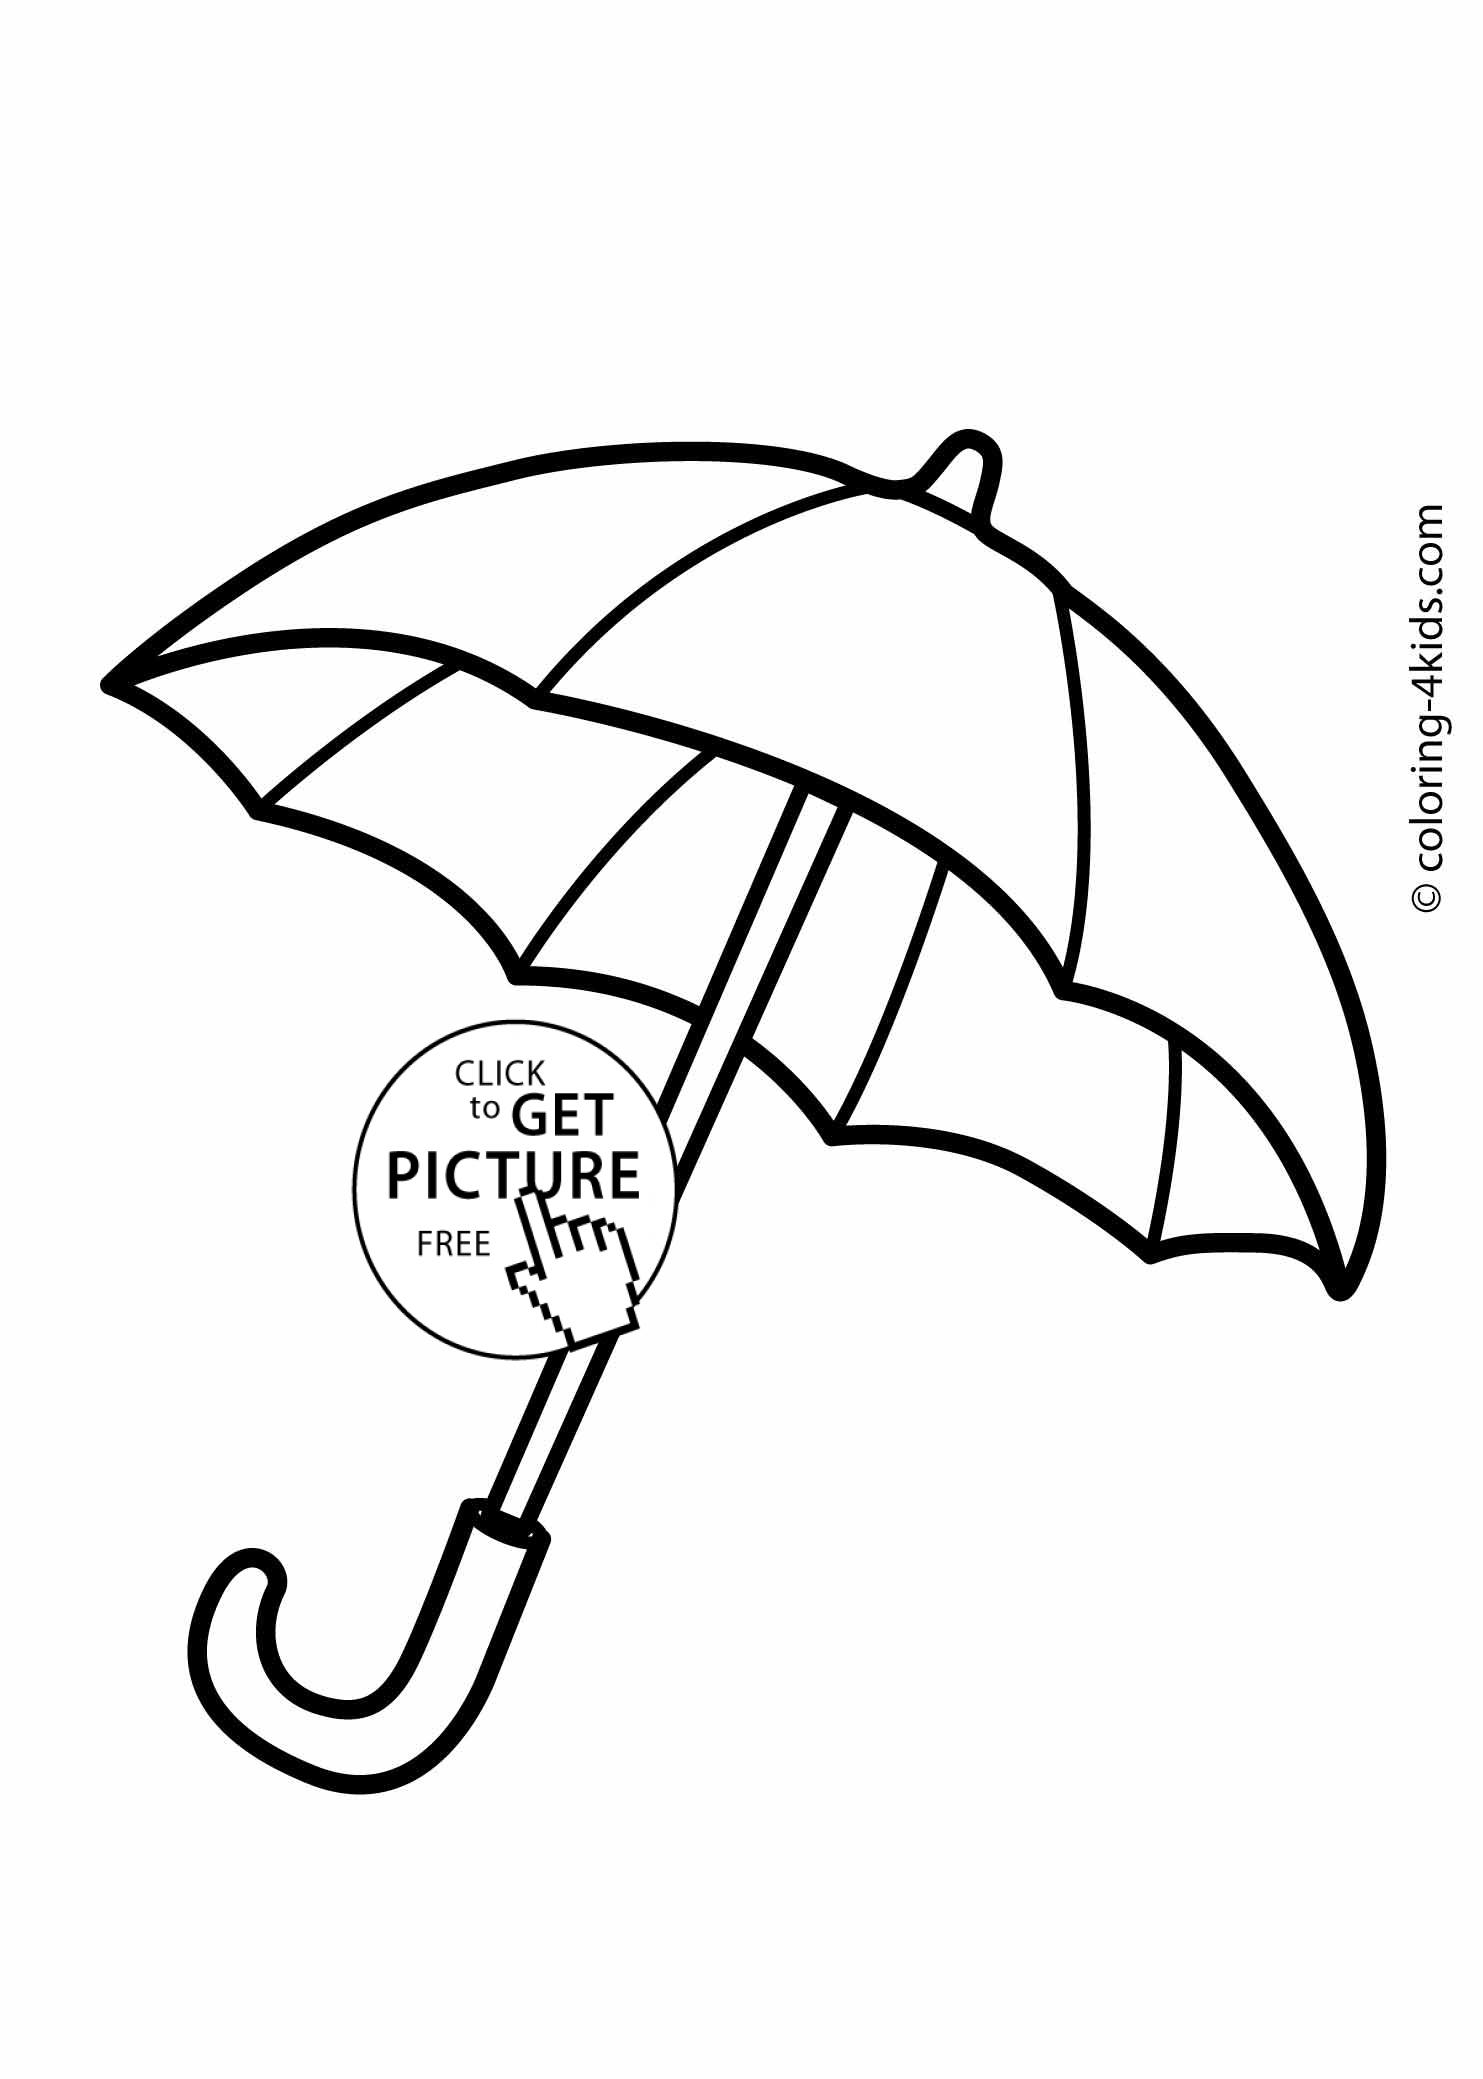 Umbrella Coloring Pages For Kids Printable Drawing